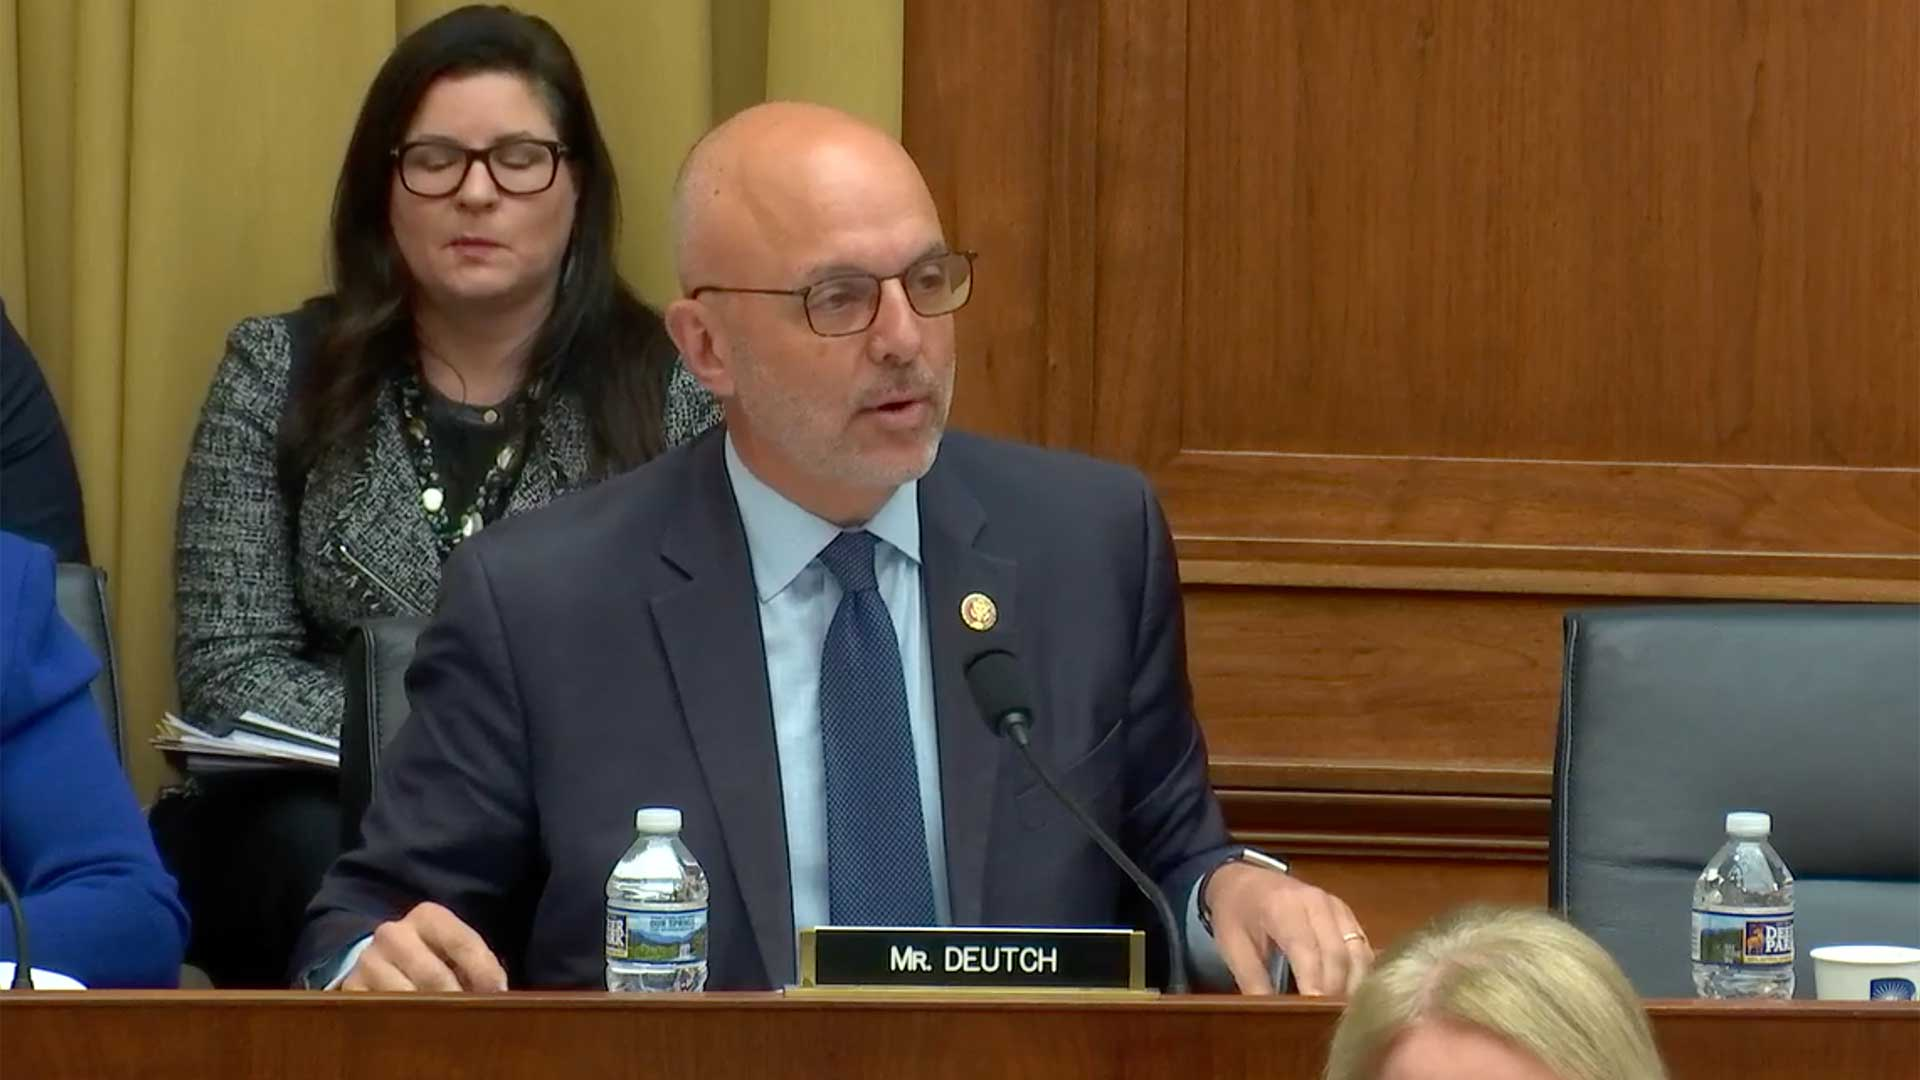 Democratic Rep. Ted Deutch speaking in a video still from a U.S. House Committee on the Judiciary hearing, Feb. 26.